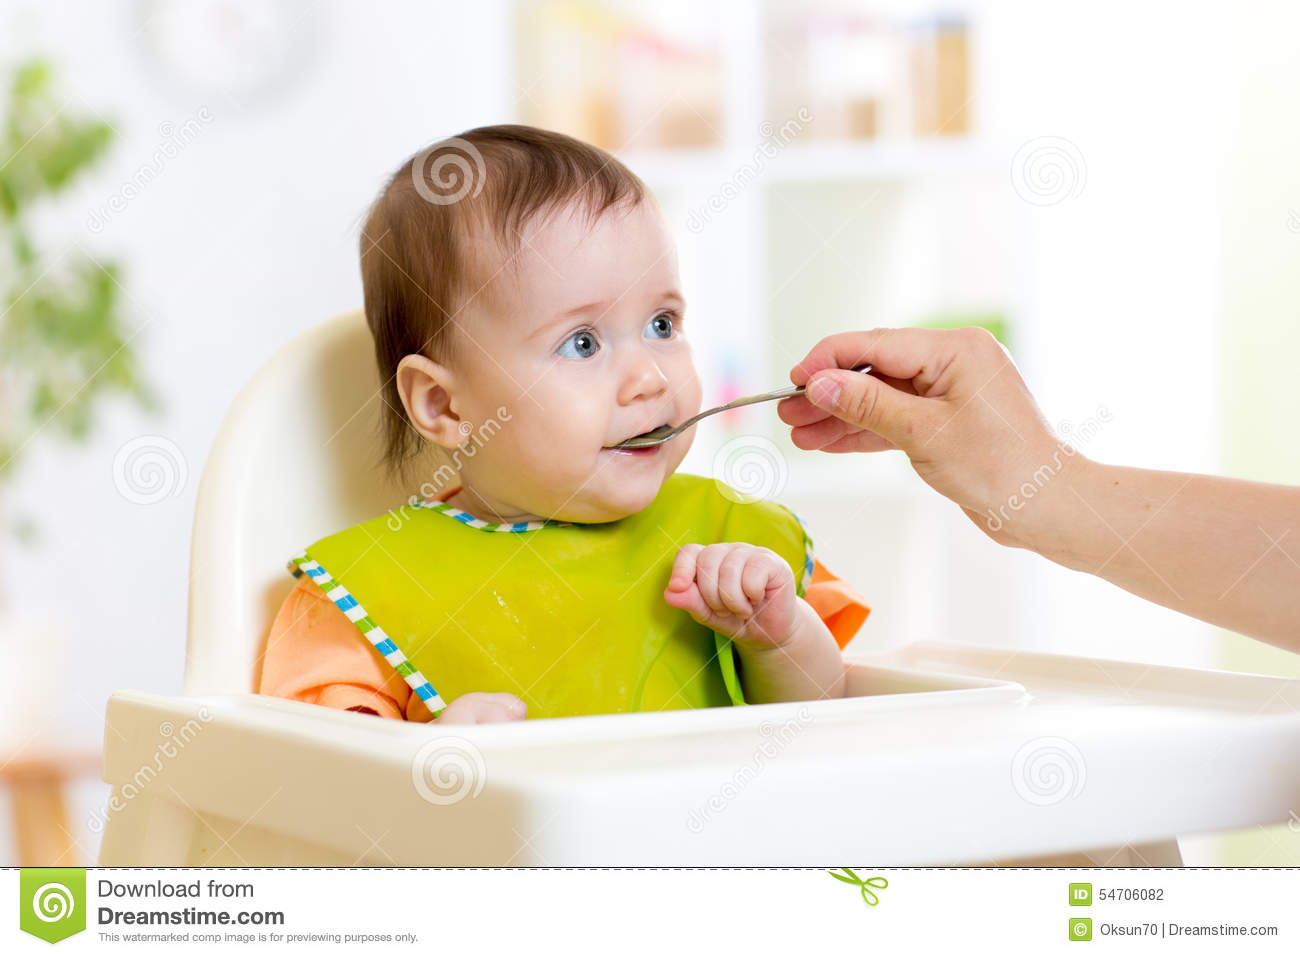 Baby Feeding Spoons Mother Feeding Baby With Spoon Stock Photo Image 54706082